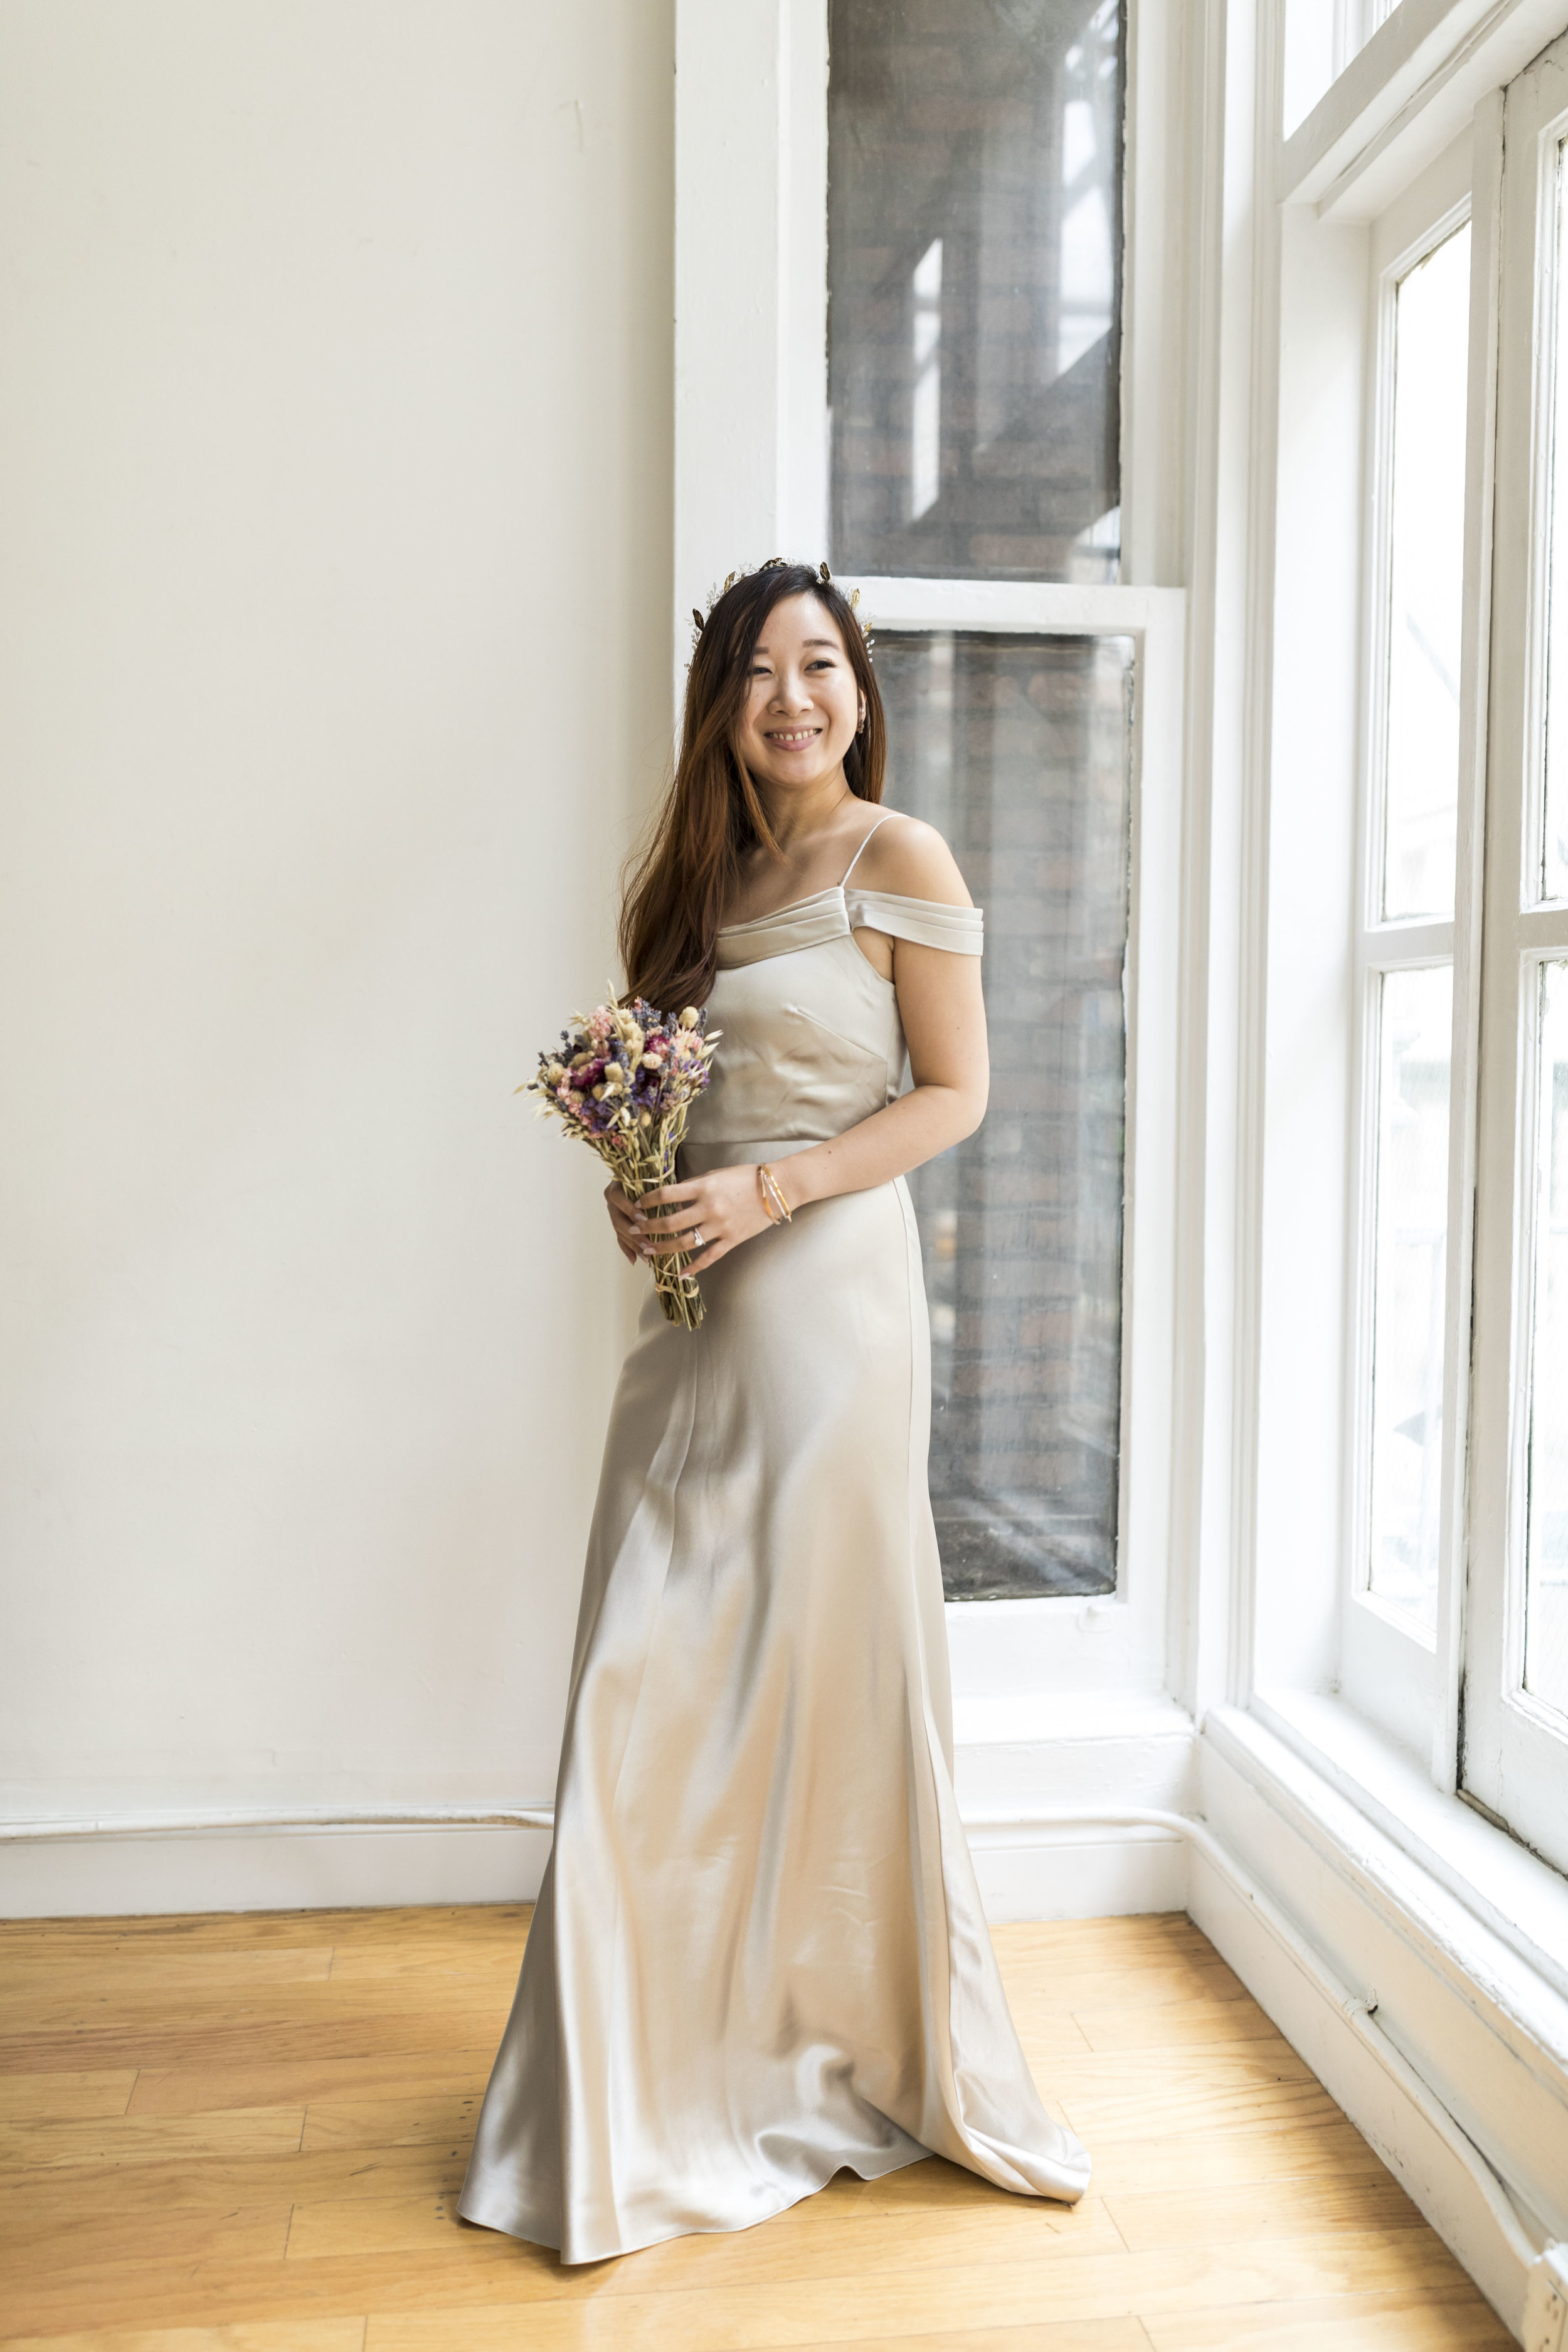 This Jenny Yoo satin gown features a fluid A-line design. Photos by Ashley Gallerani.